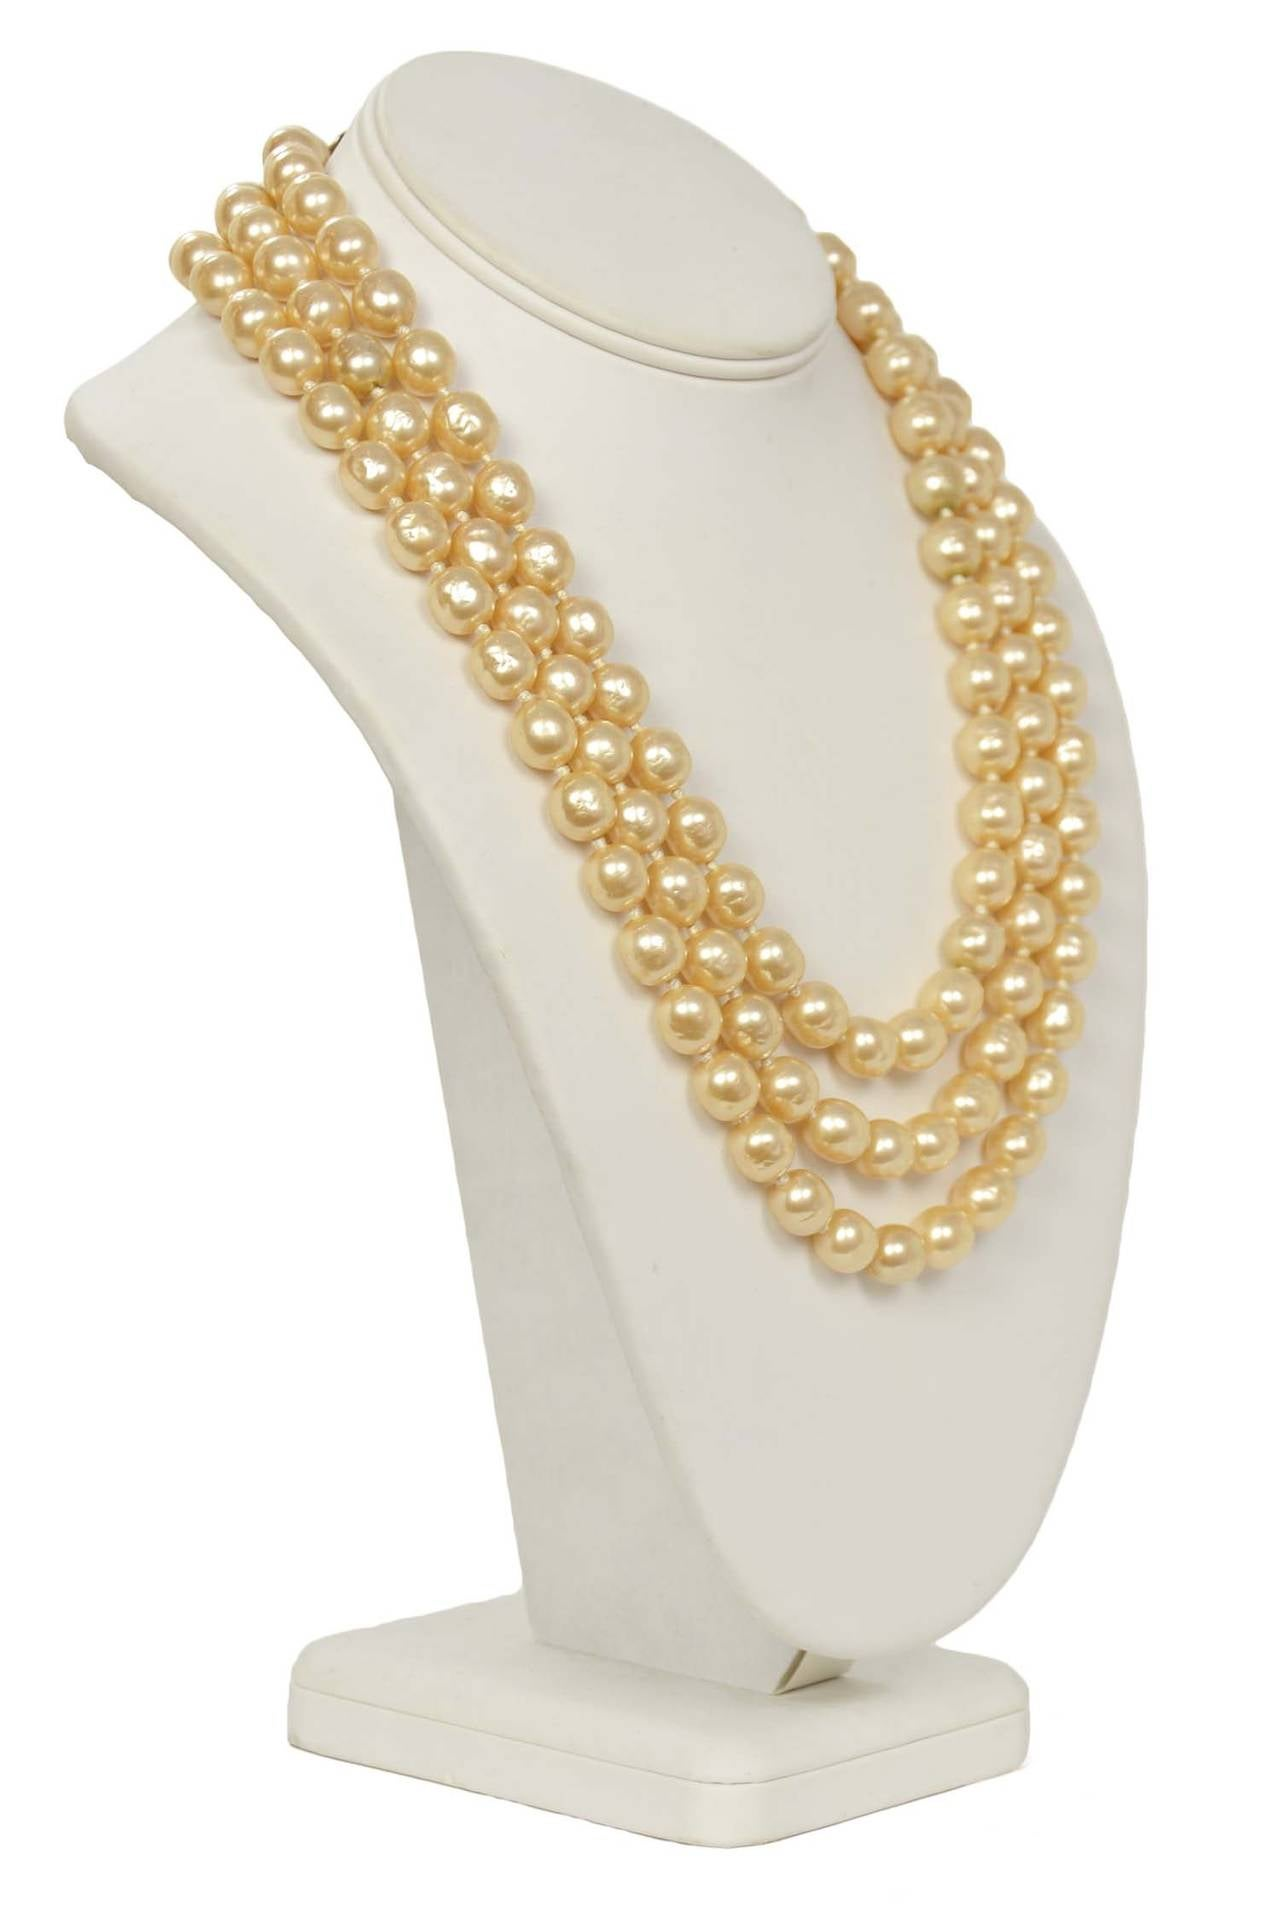 CHANEL Vintage 1950's-1960's Three Strand Pearl Necklace w/Antique Clasp 3